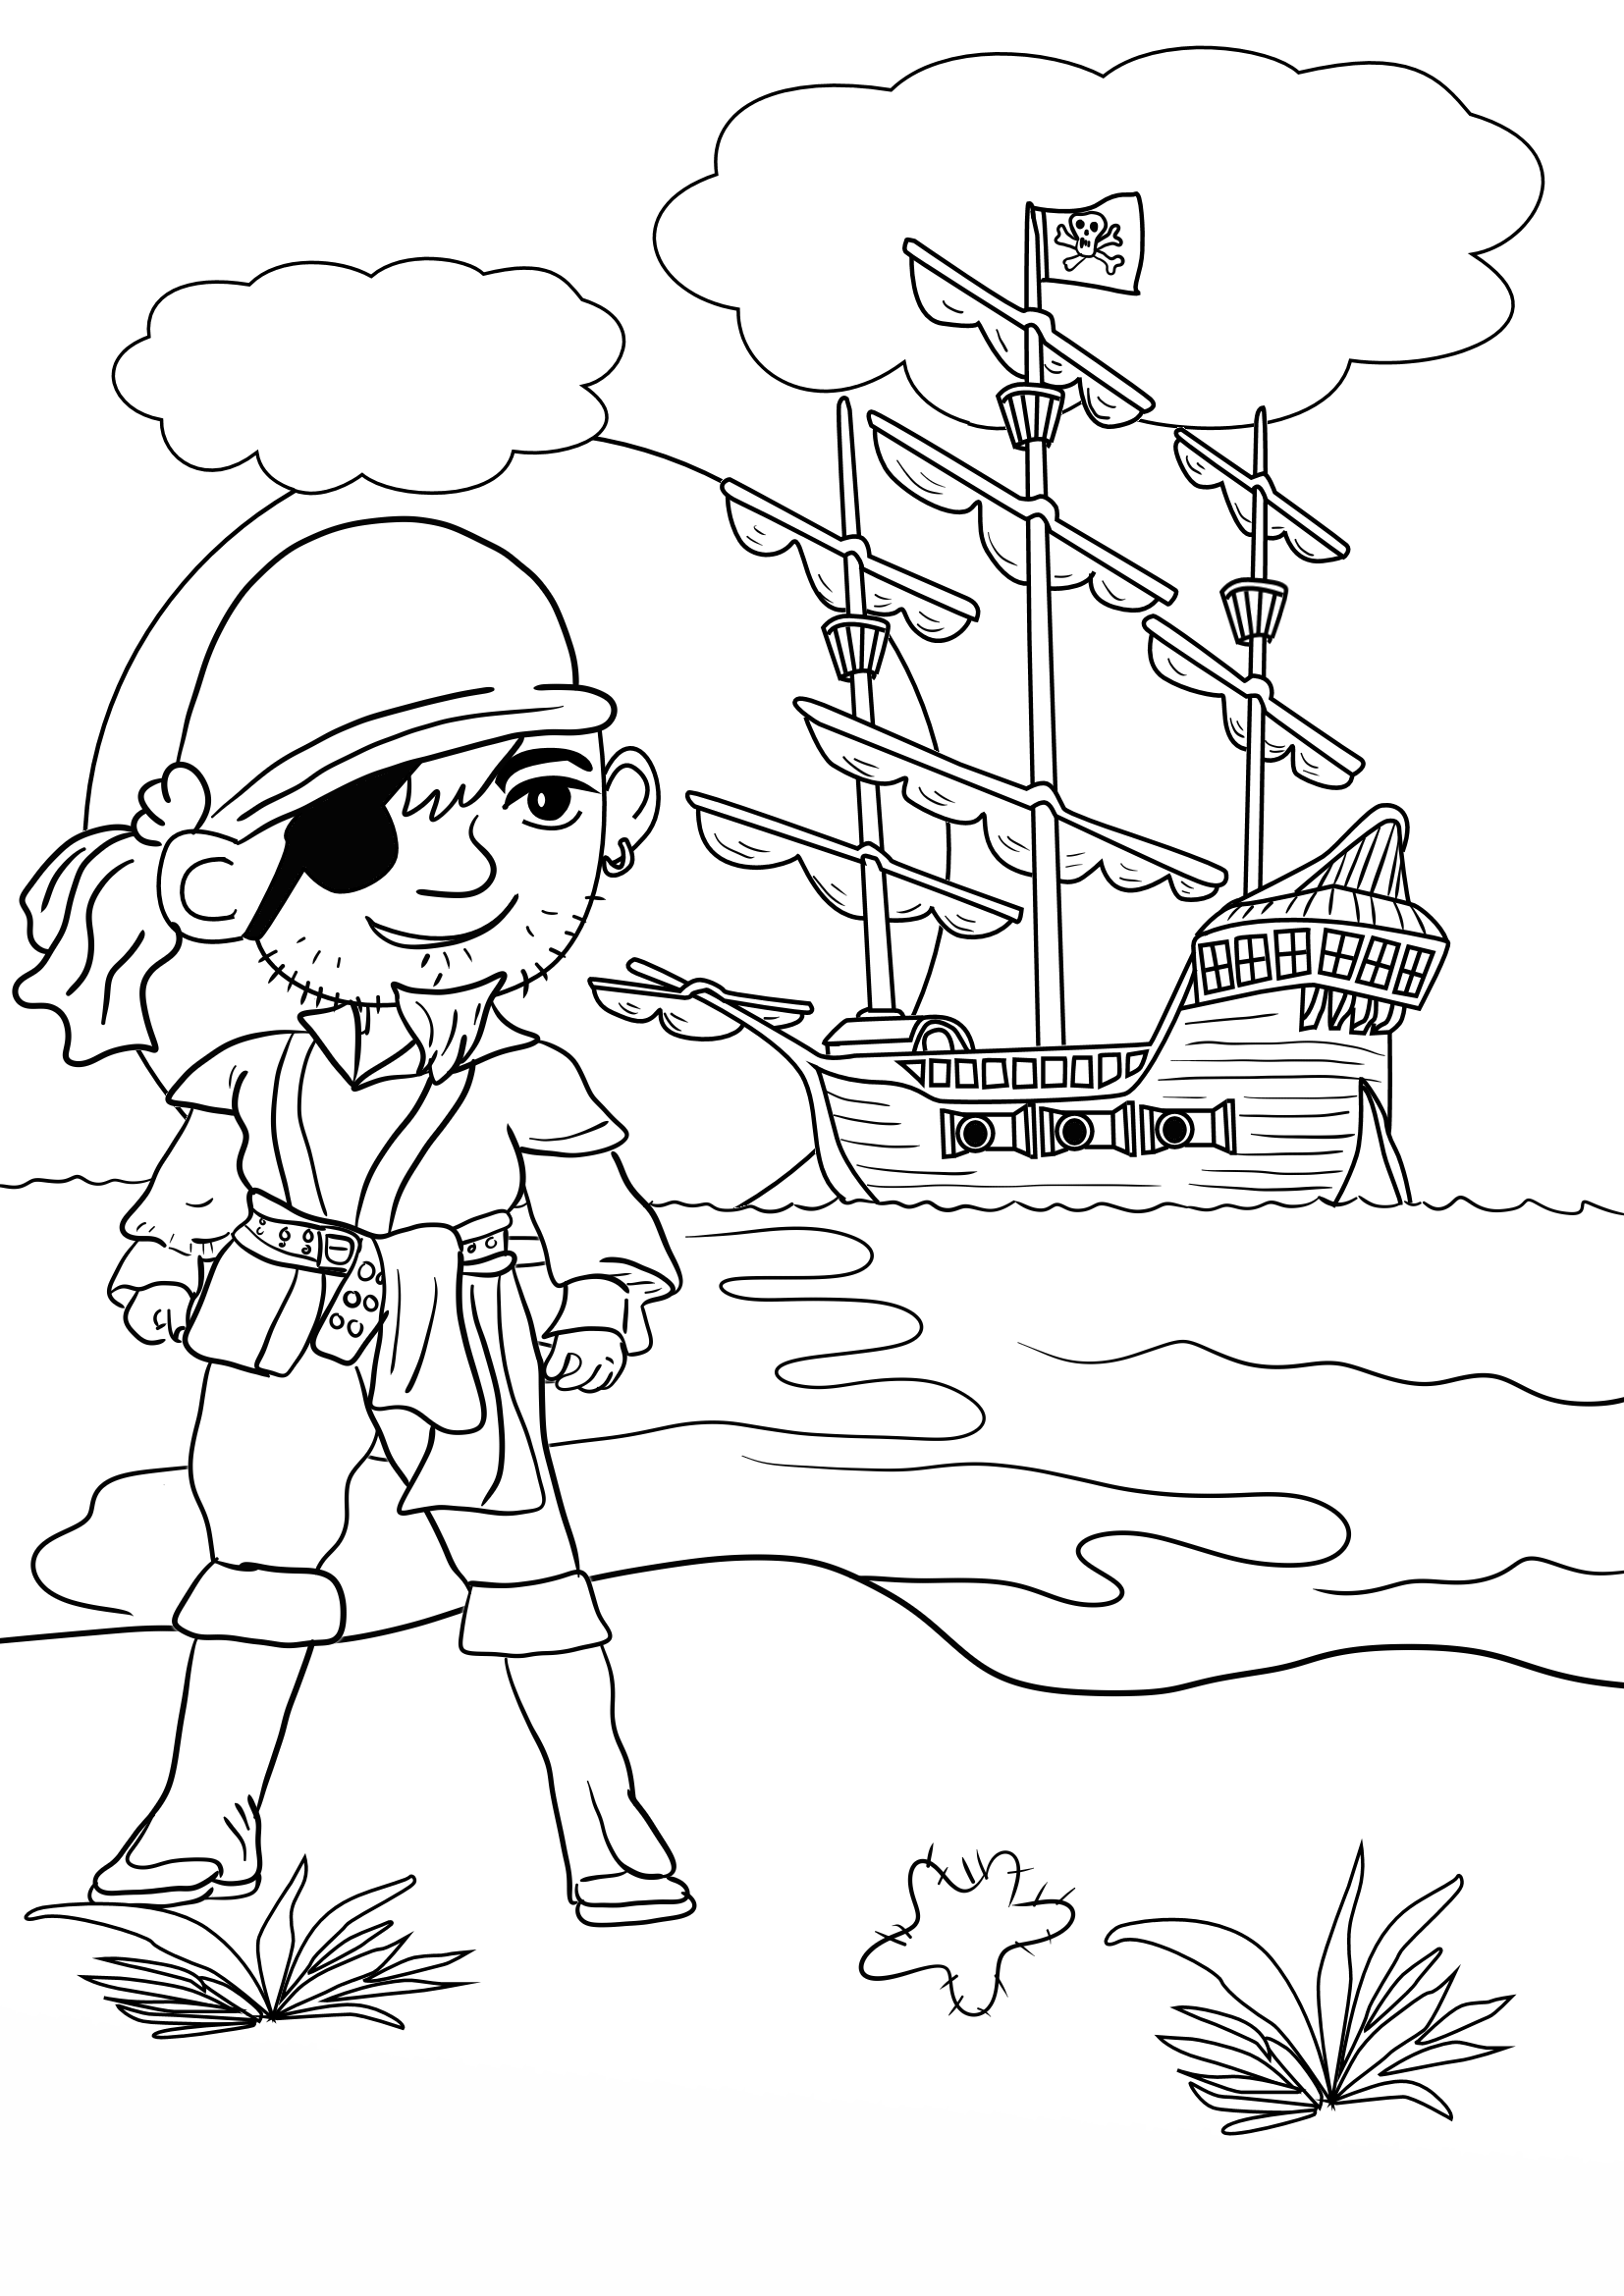 Pirate colouring pages to print - Click Here To Download Both Colouring Pages In Pdf Format To Print As Many Times As You Like